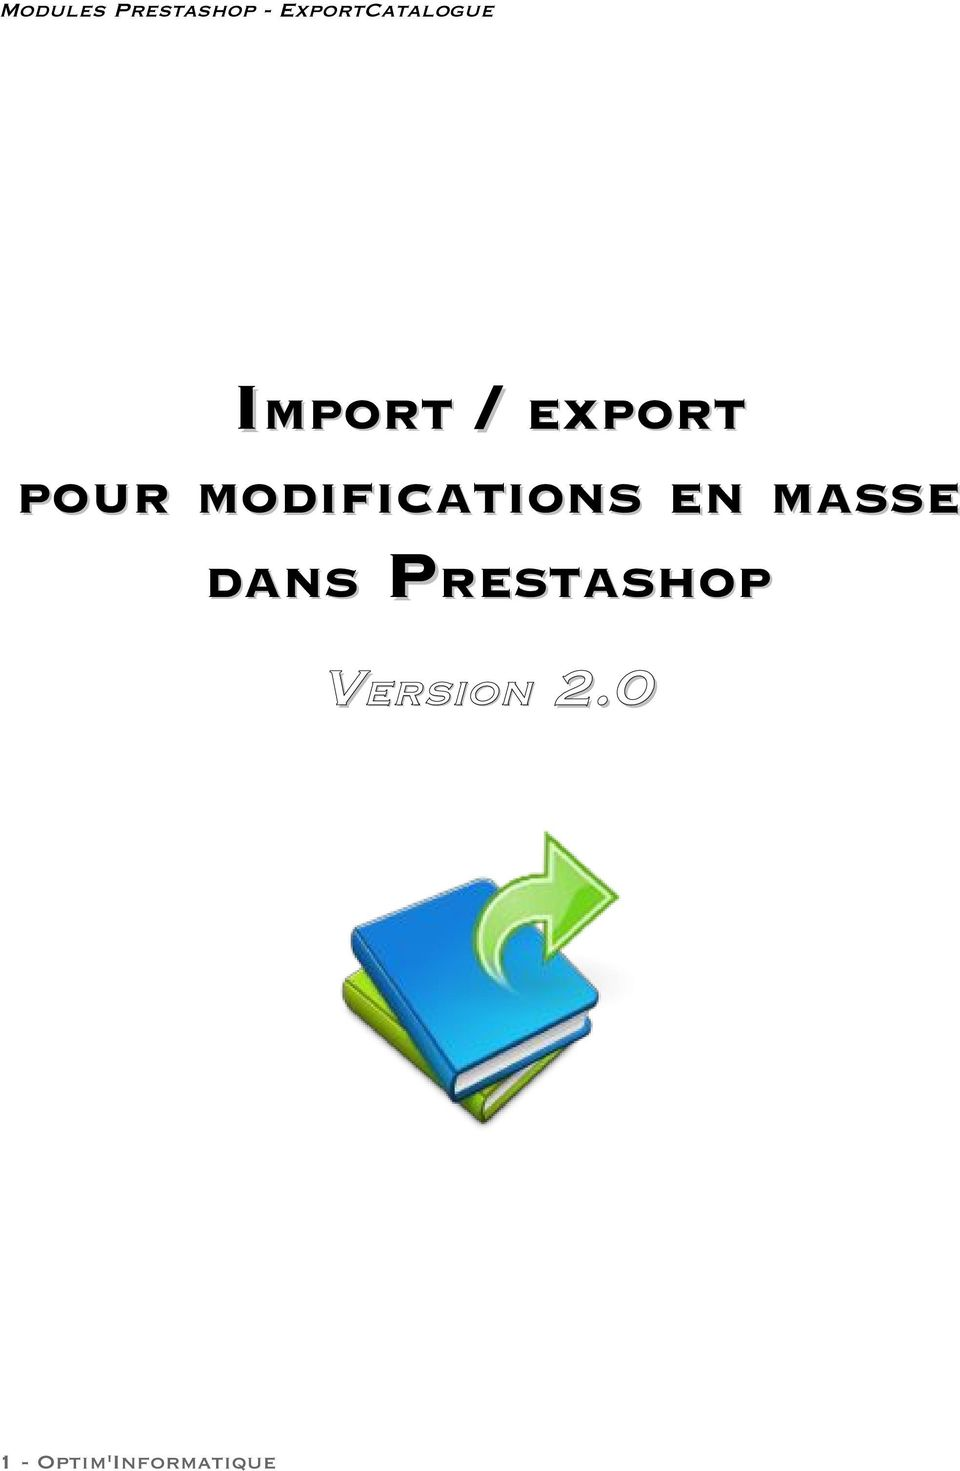 DANS PRESTASHOP VERSION